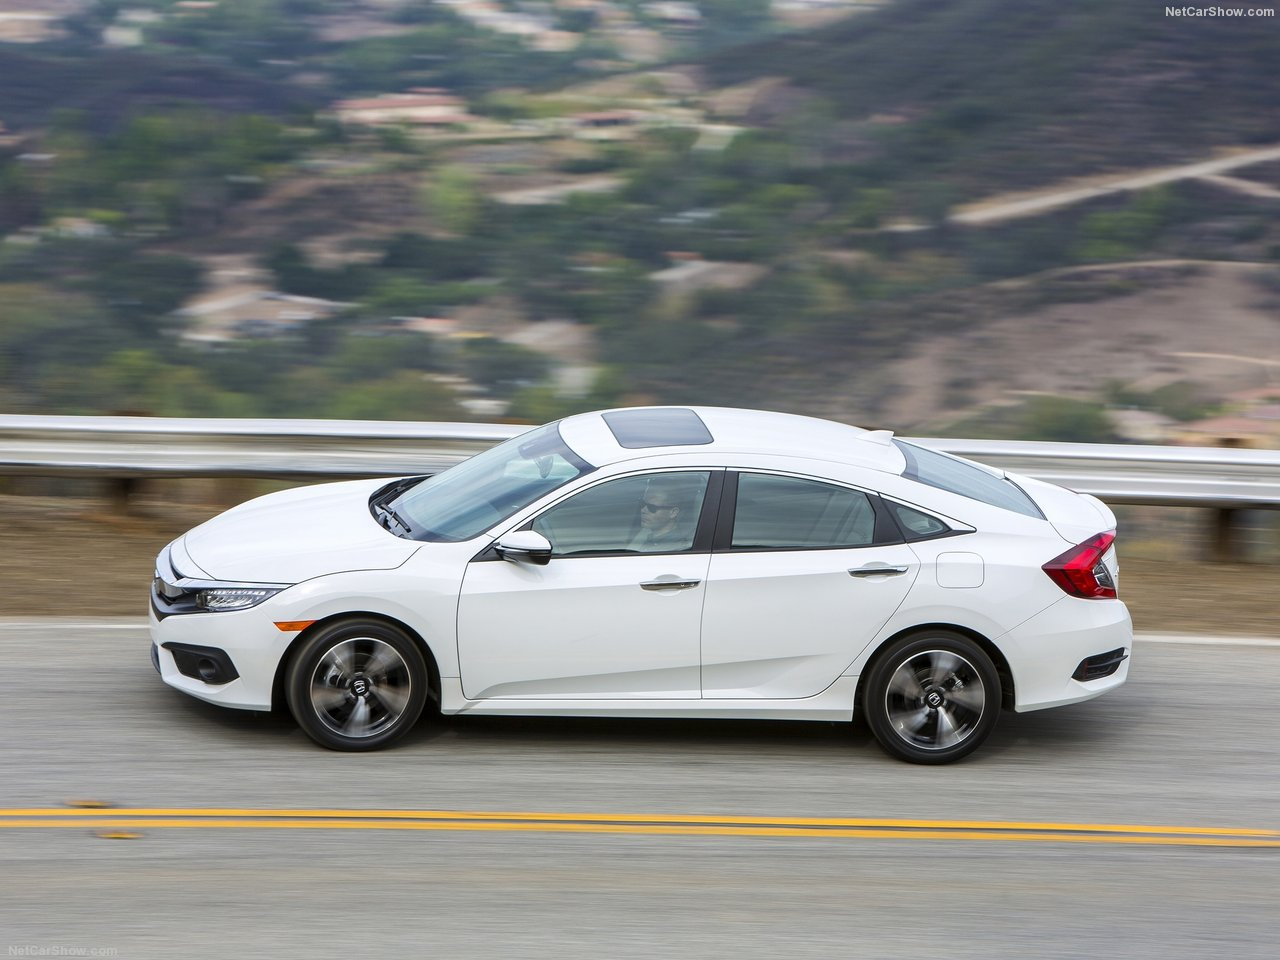 Honda-Civic_Sedan_2016_1280x960_wallpaper_33.jpg